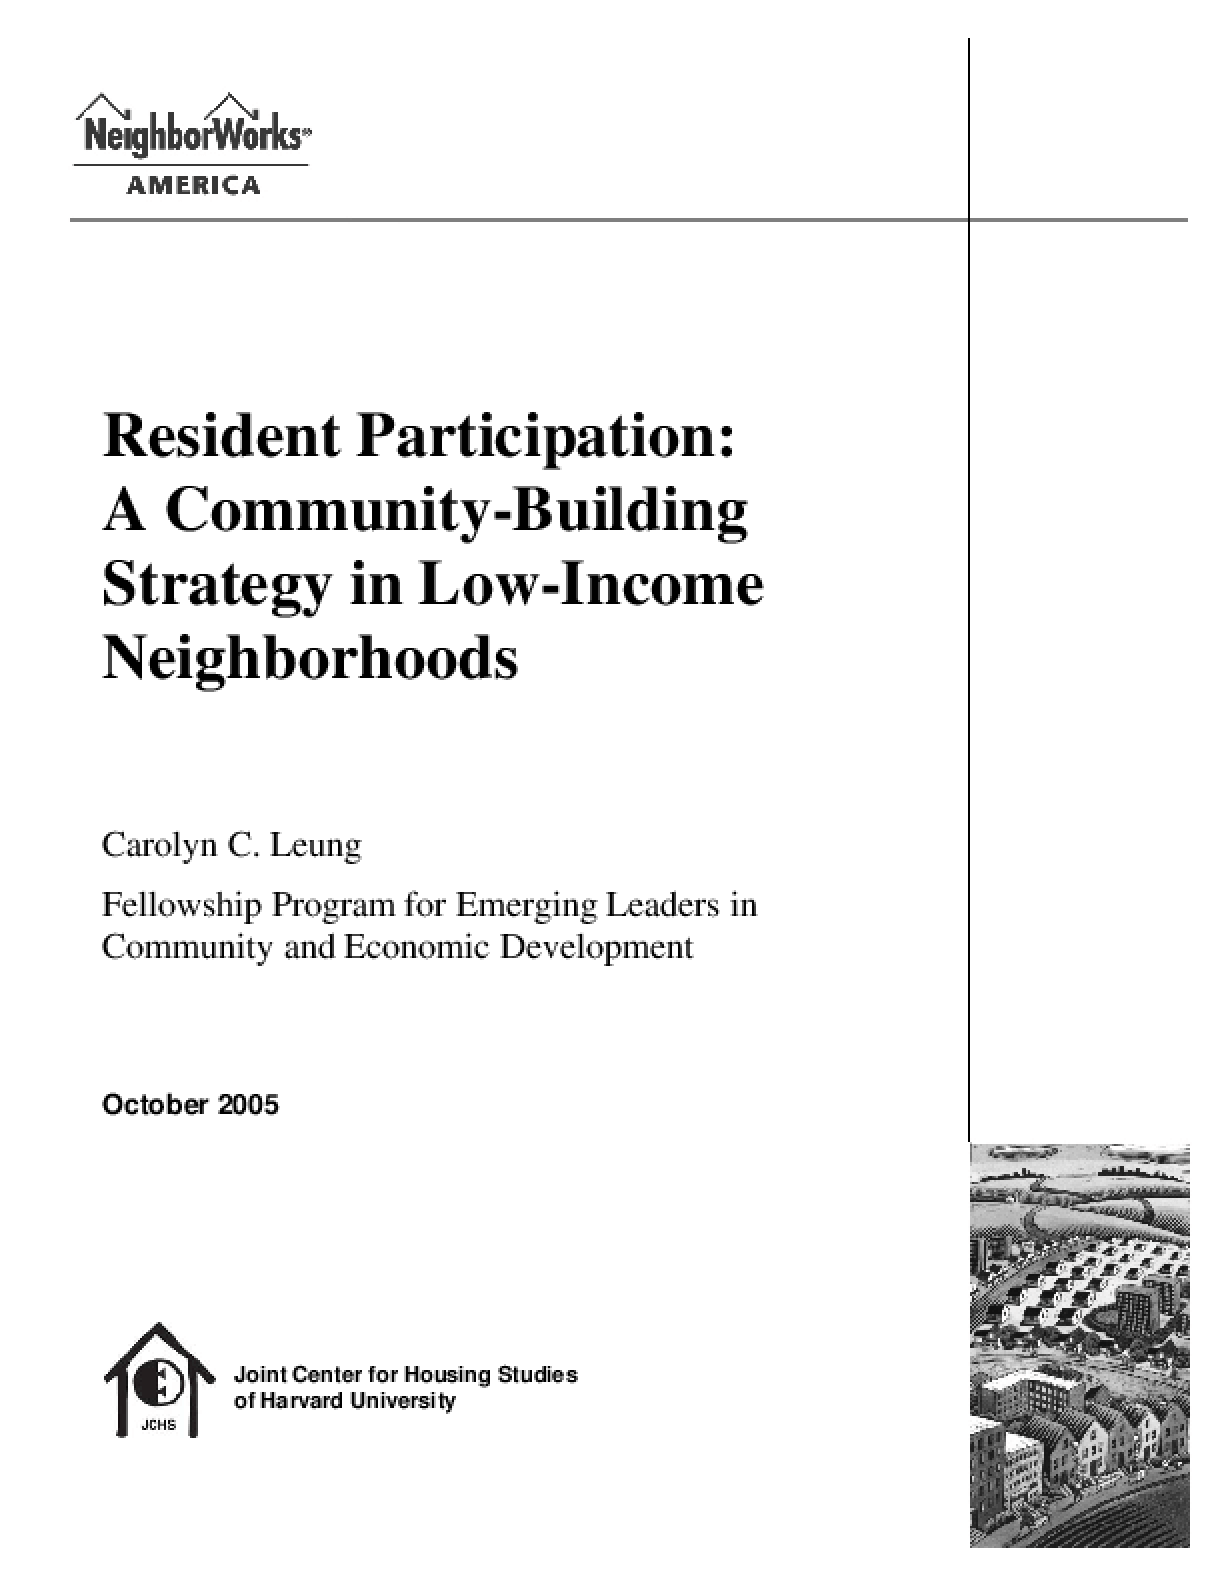 Resident Participation: A Community-Building Strategy in Low-Income Neighborhoods